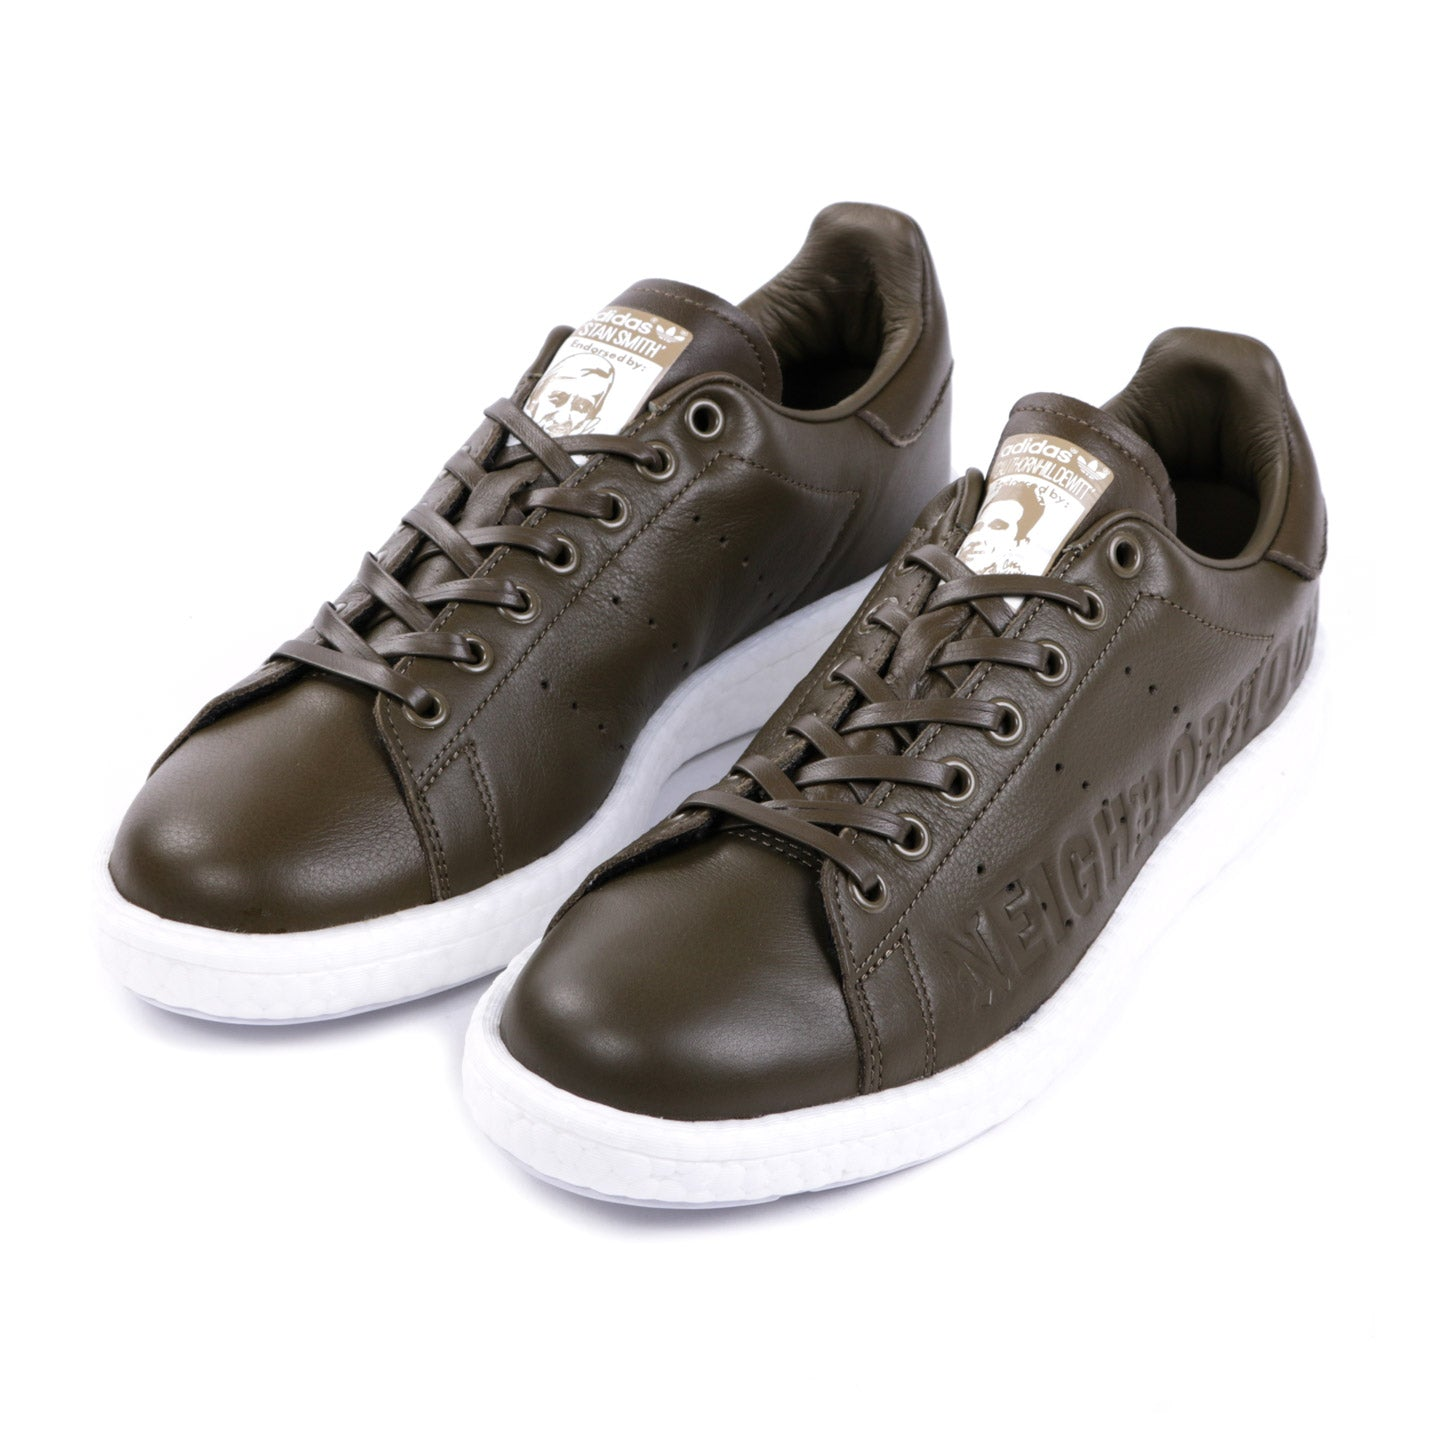 ADIDAS ORIGINALS NEIGHBORHOOD CTD STAN SMITH BOOST OLIVE